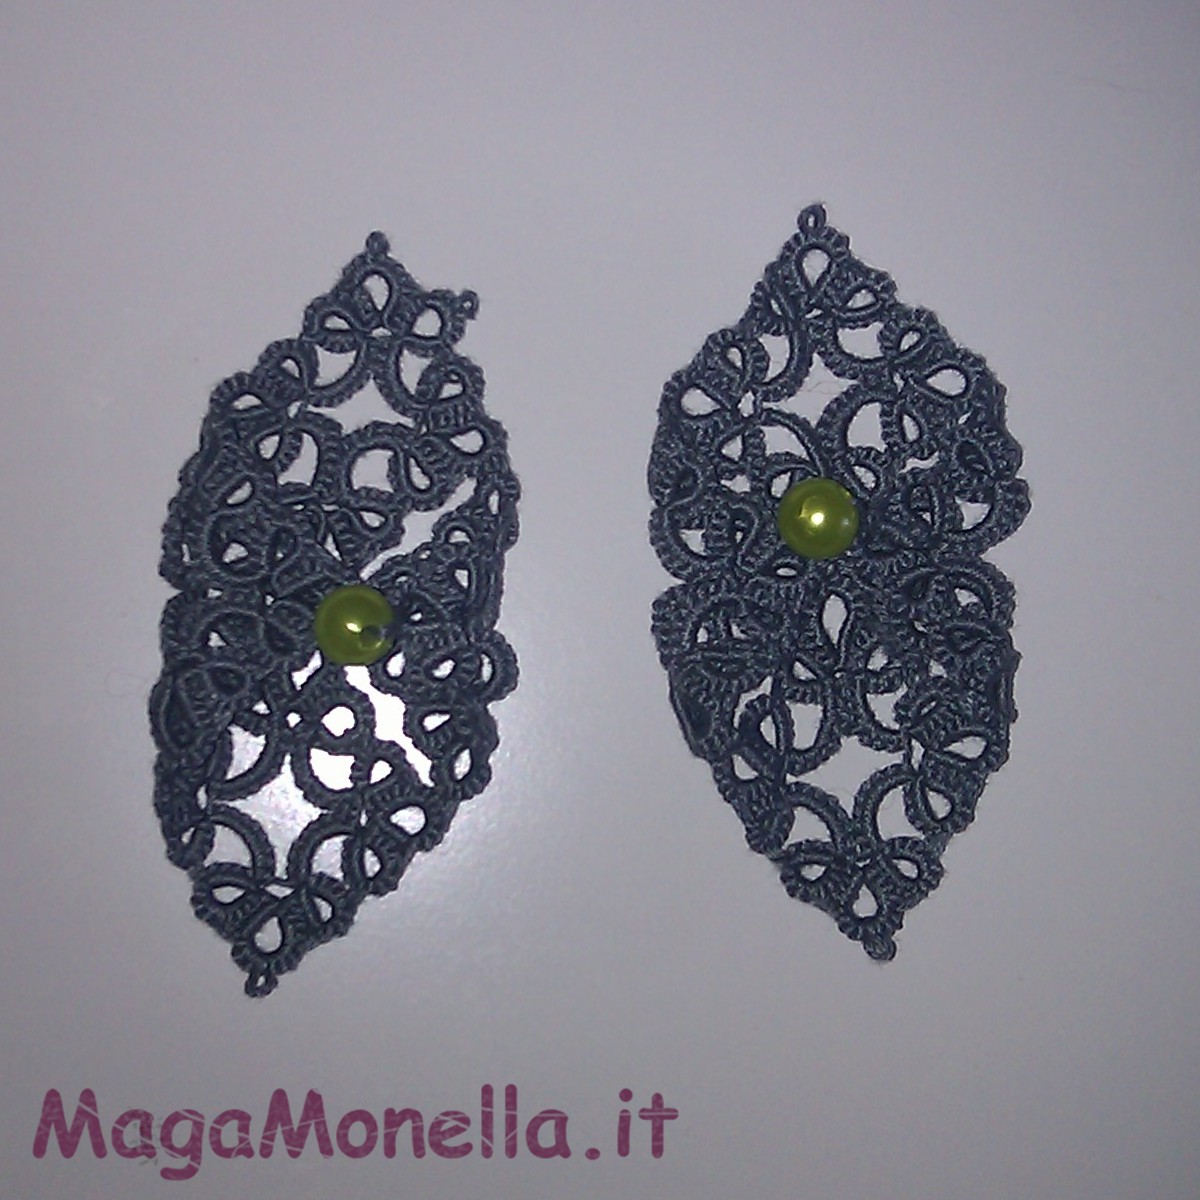 tatting earrings - frivolitè - makouk - orecchini a chiacchierino con perla